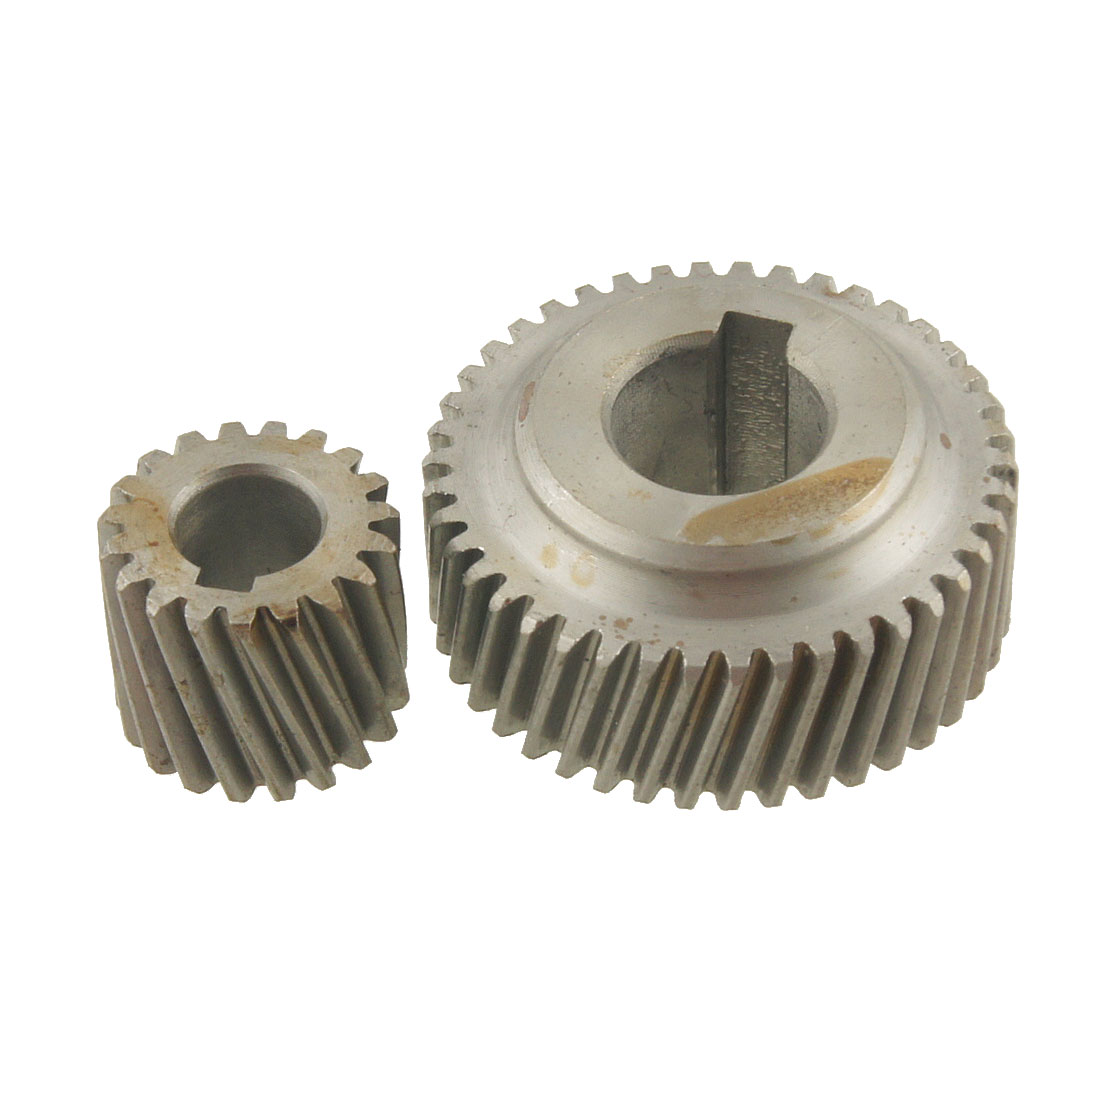 2 Pcs Metal Spiral Bevel Gear Power Tool Spare Part for Makita 4100